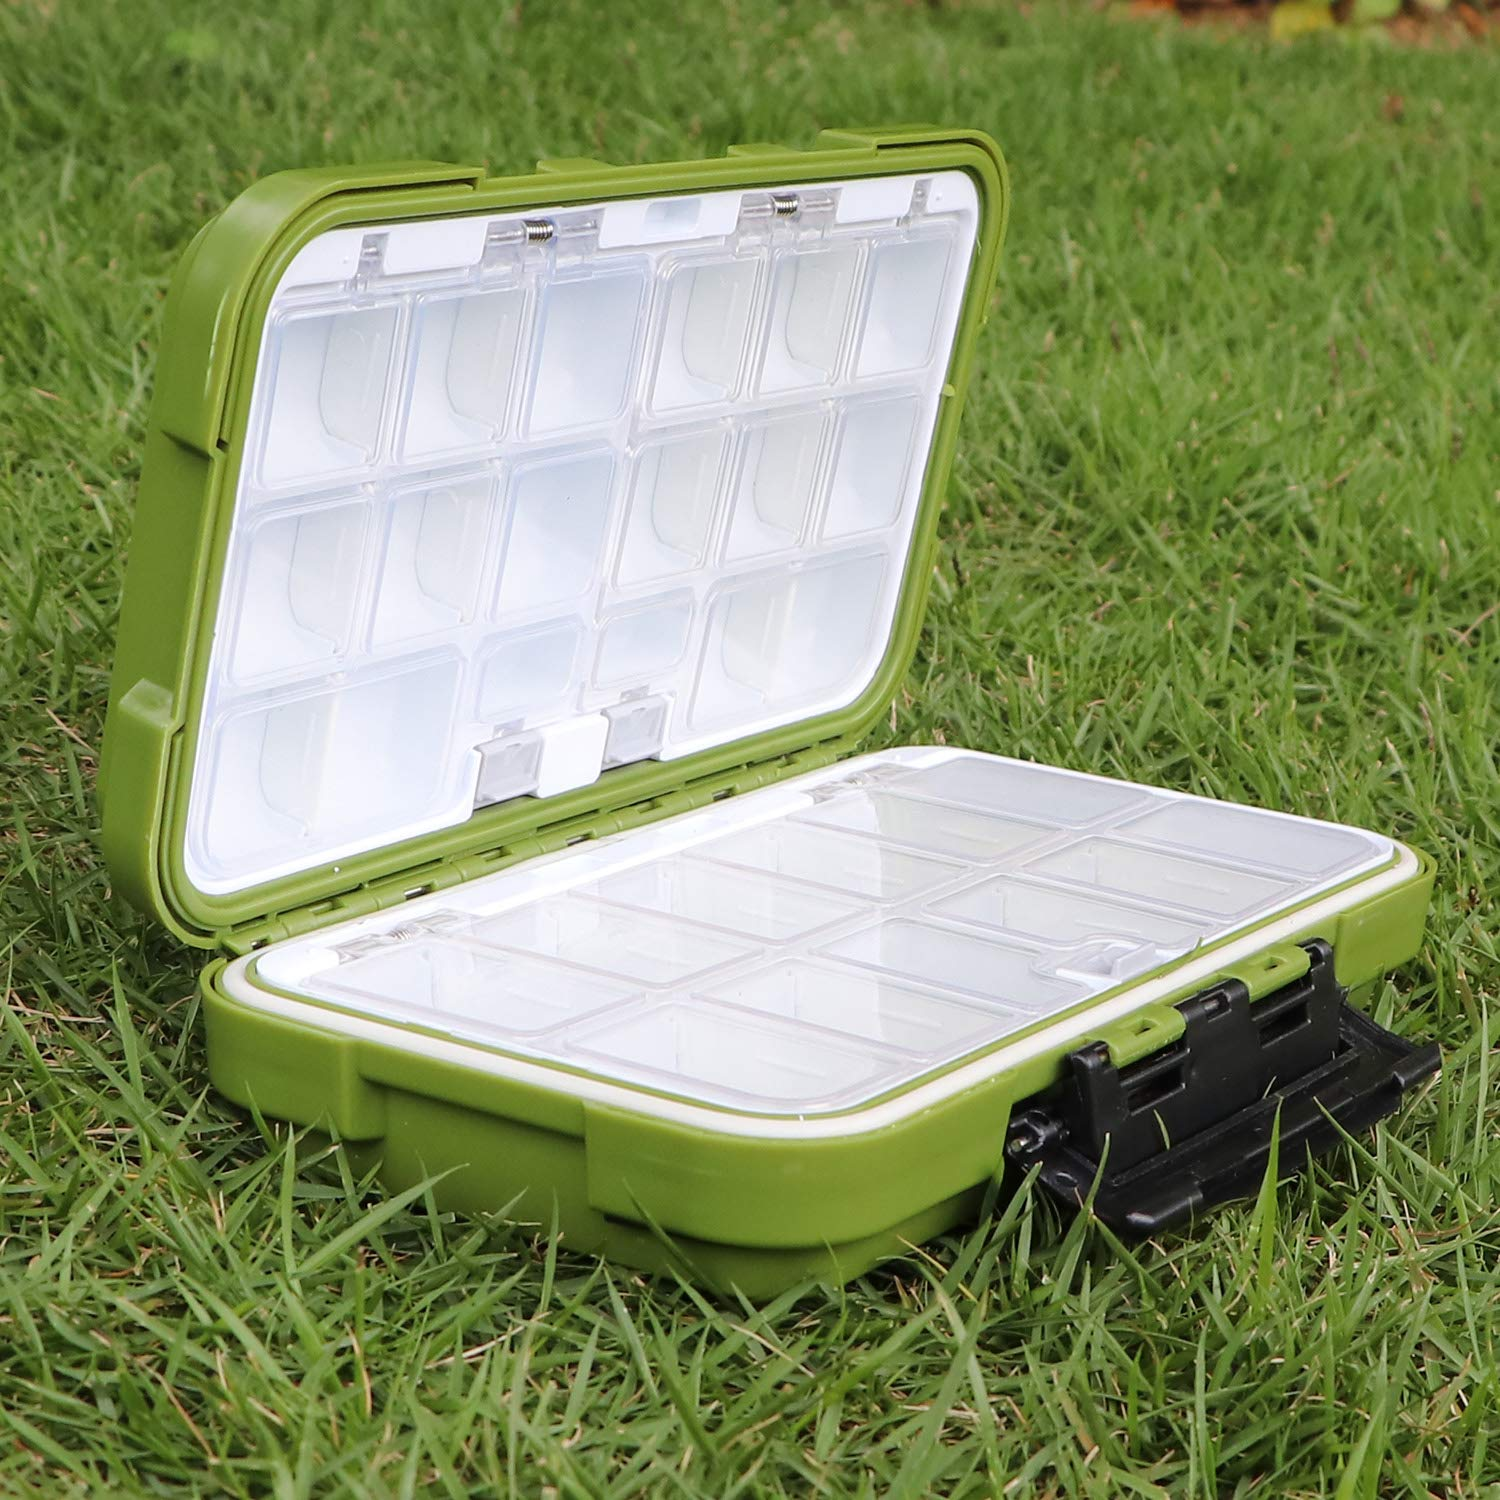 Keeshine Compact Waterproof Fishing Tackle Box Plastic Fishing Lure Box Removable Grid Fishing Tackle Storage for Fishing Lure//Hook Jewelry Beads Earring Container Tool Storage Box